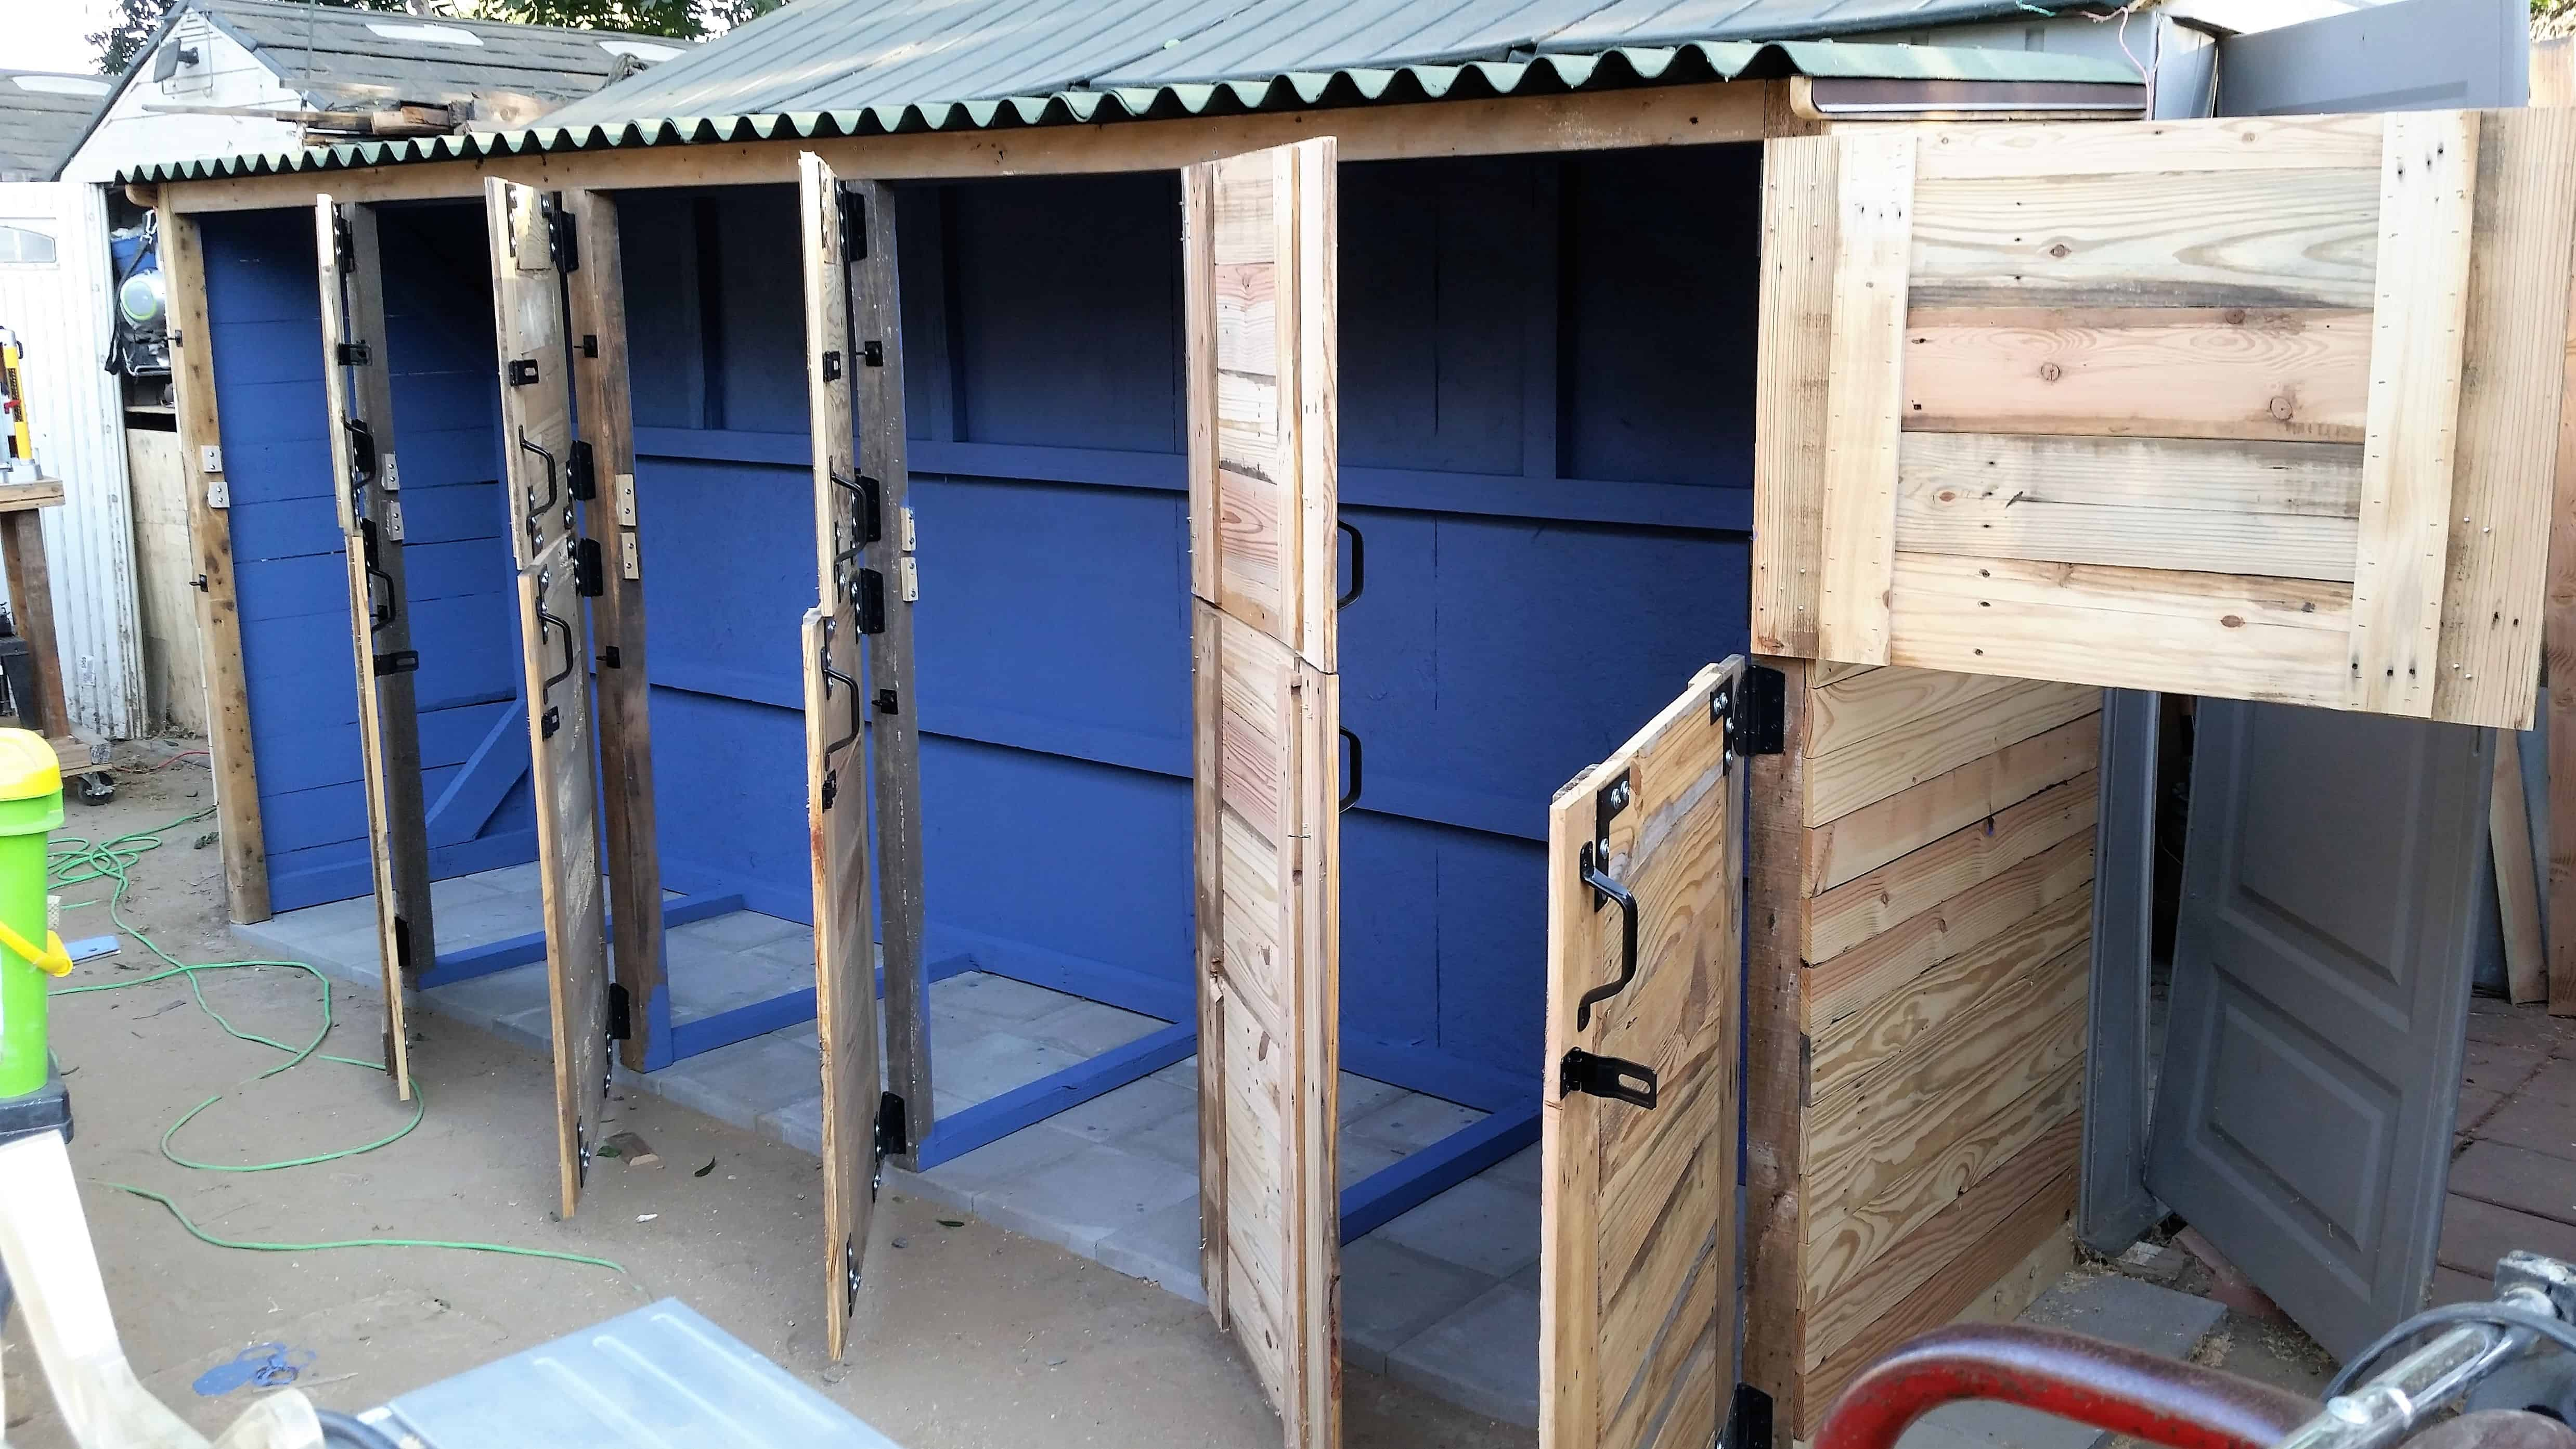 DIYBuild a Shed with Old Doors for Walls Downloadable